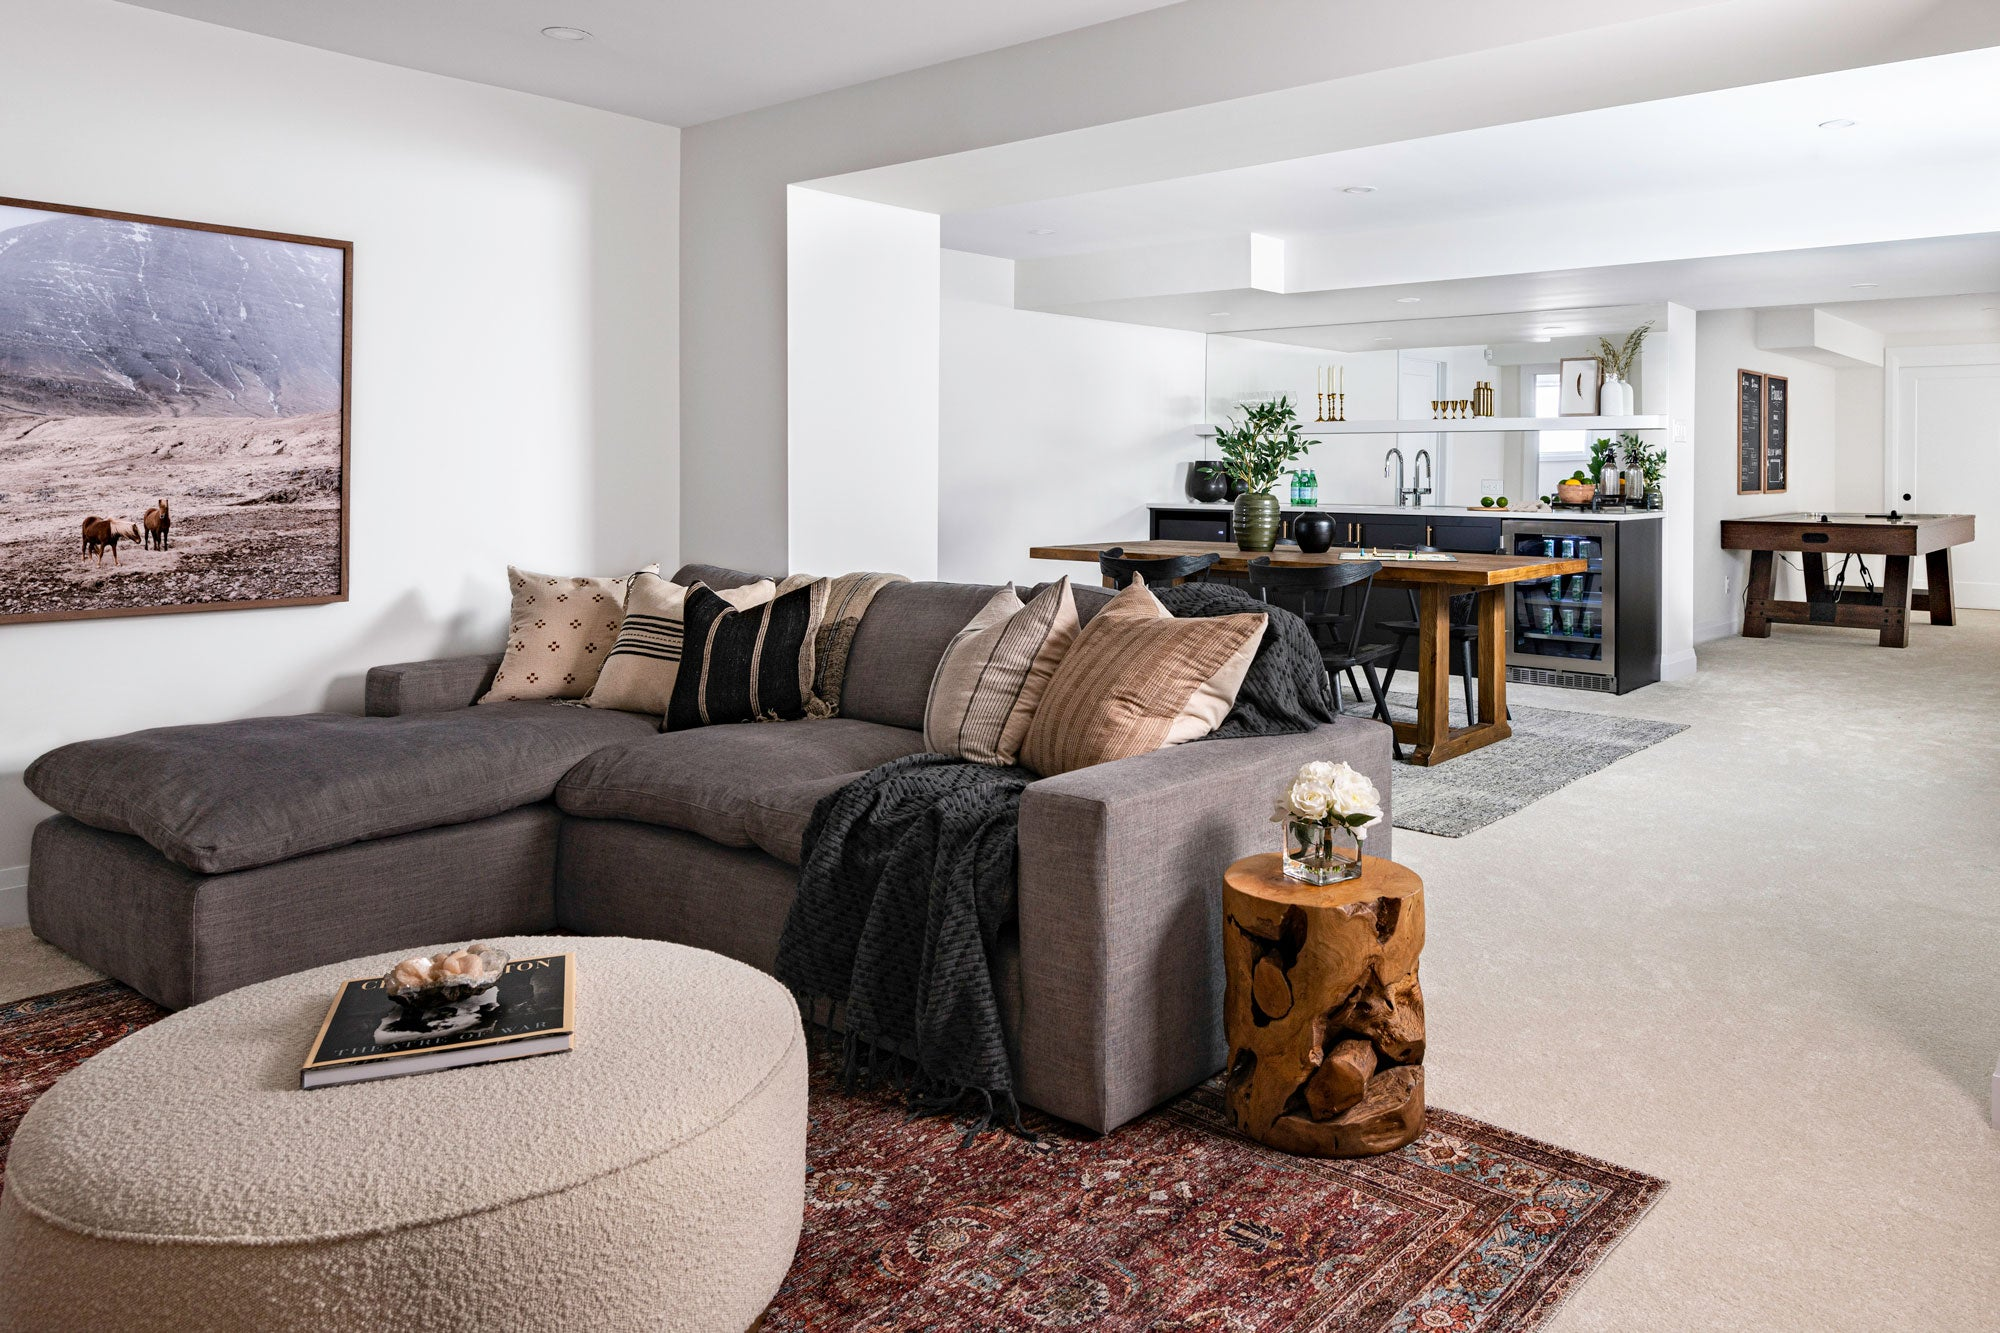 Basement tv area with grey sectional